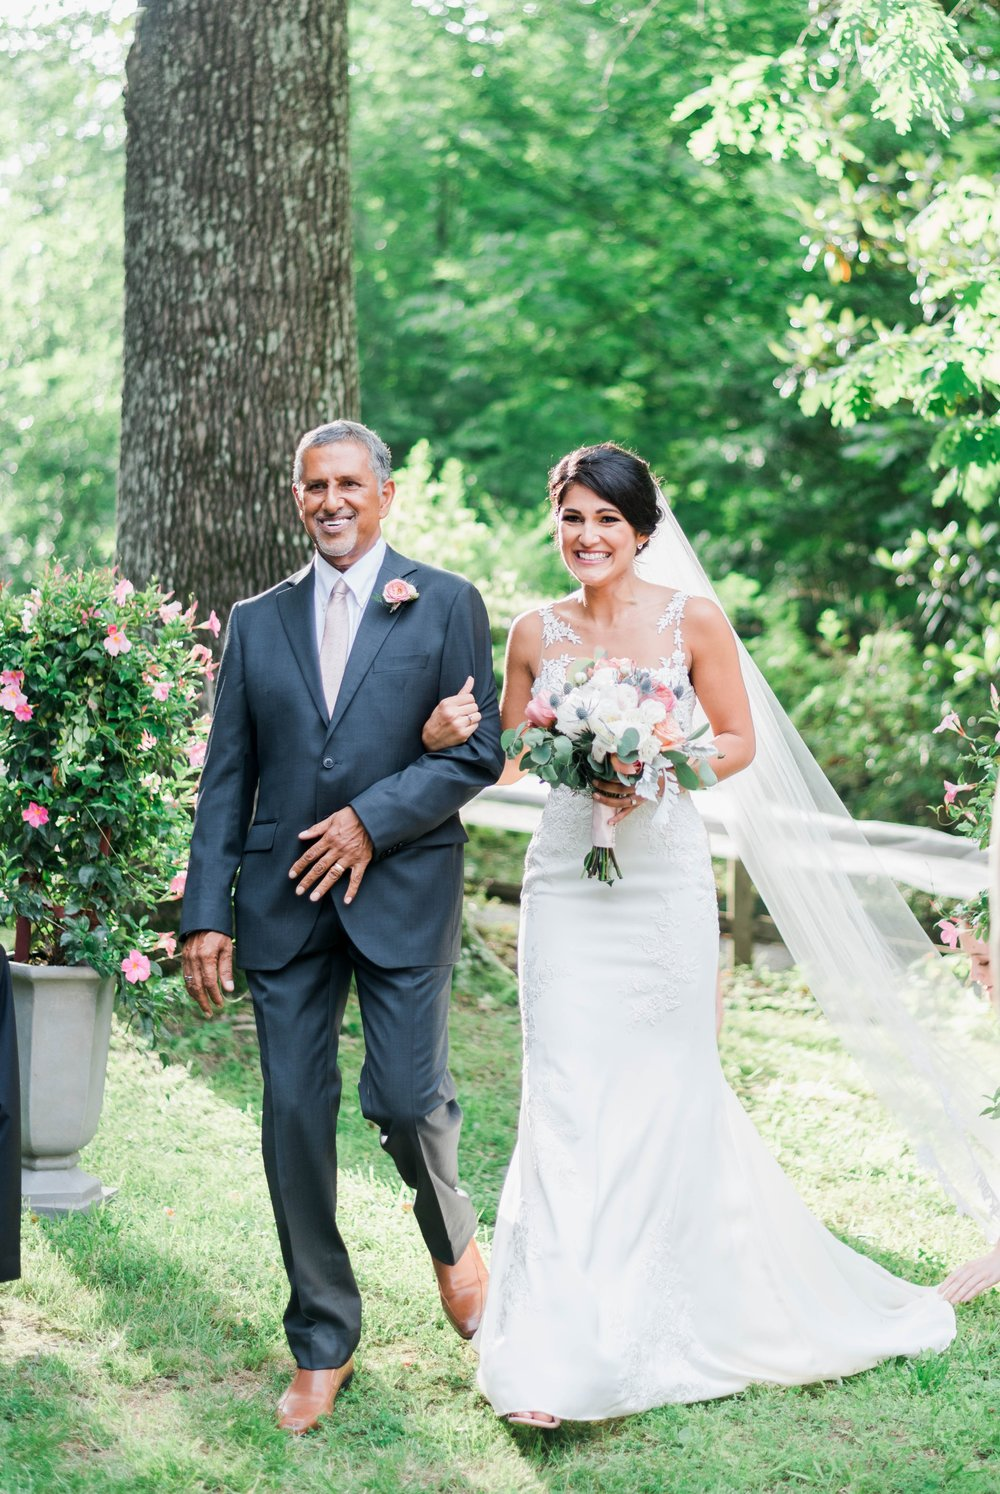 Williamsburgvawedding_backyardwedding_virginiaweddingphotographer_lynchburgweddingphotographer_PaulAliya 9.jpg